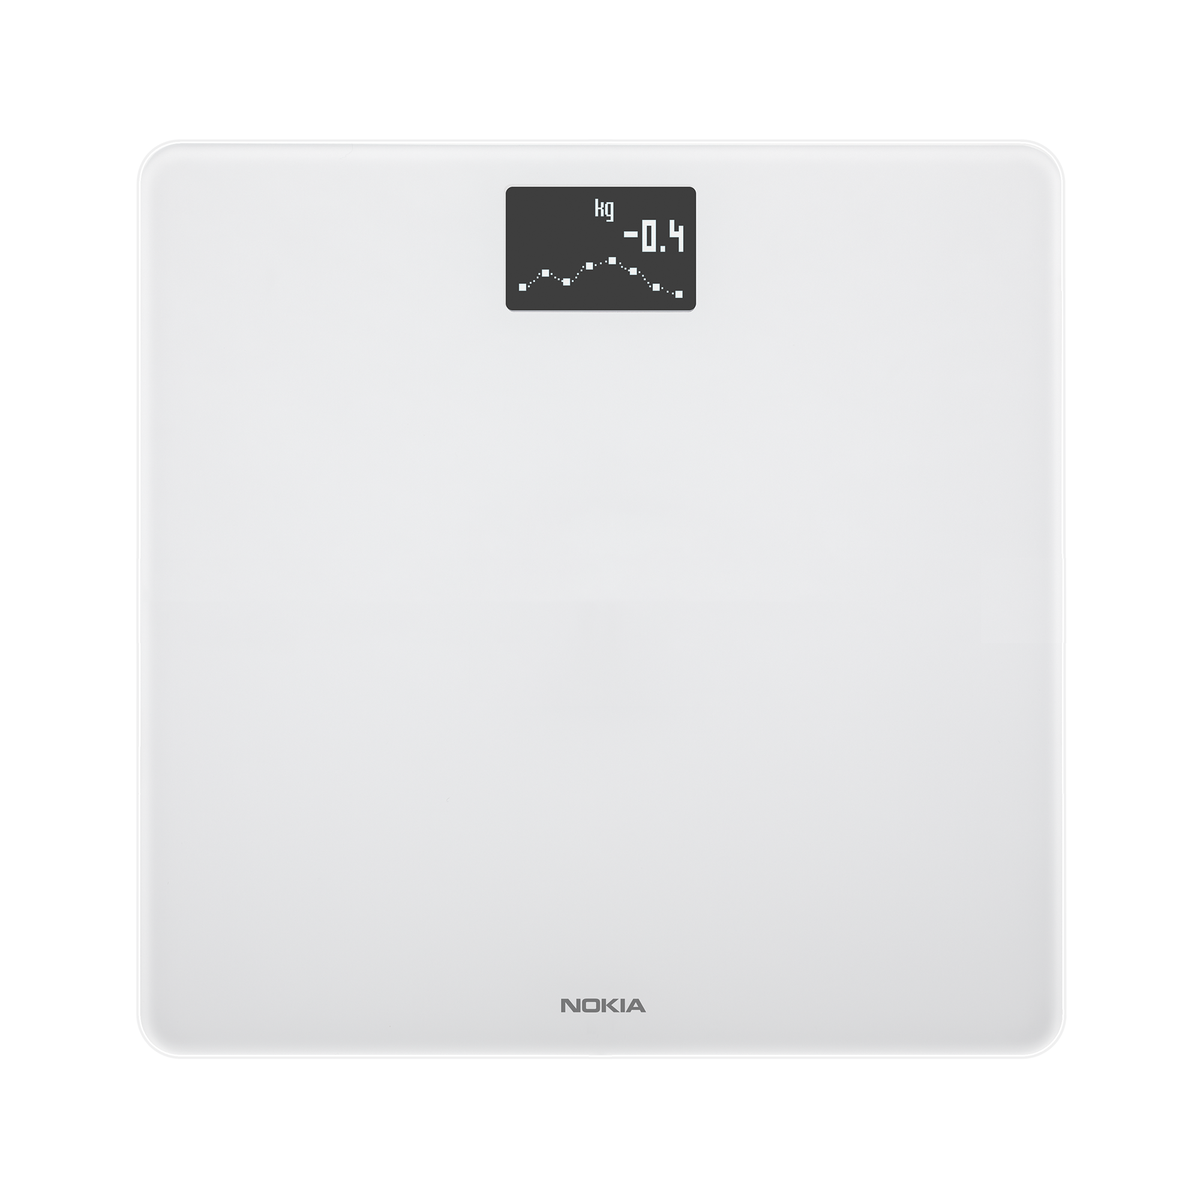 Nokia (Withings) Body weegschaal WS45 wit